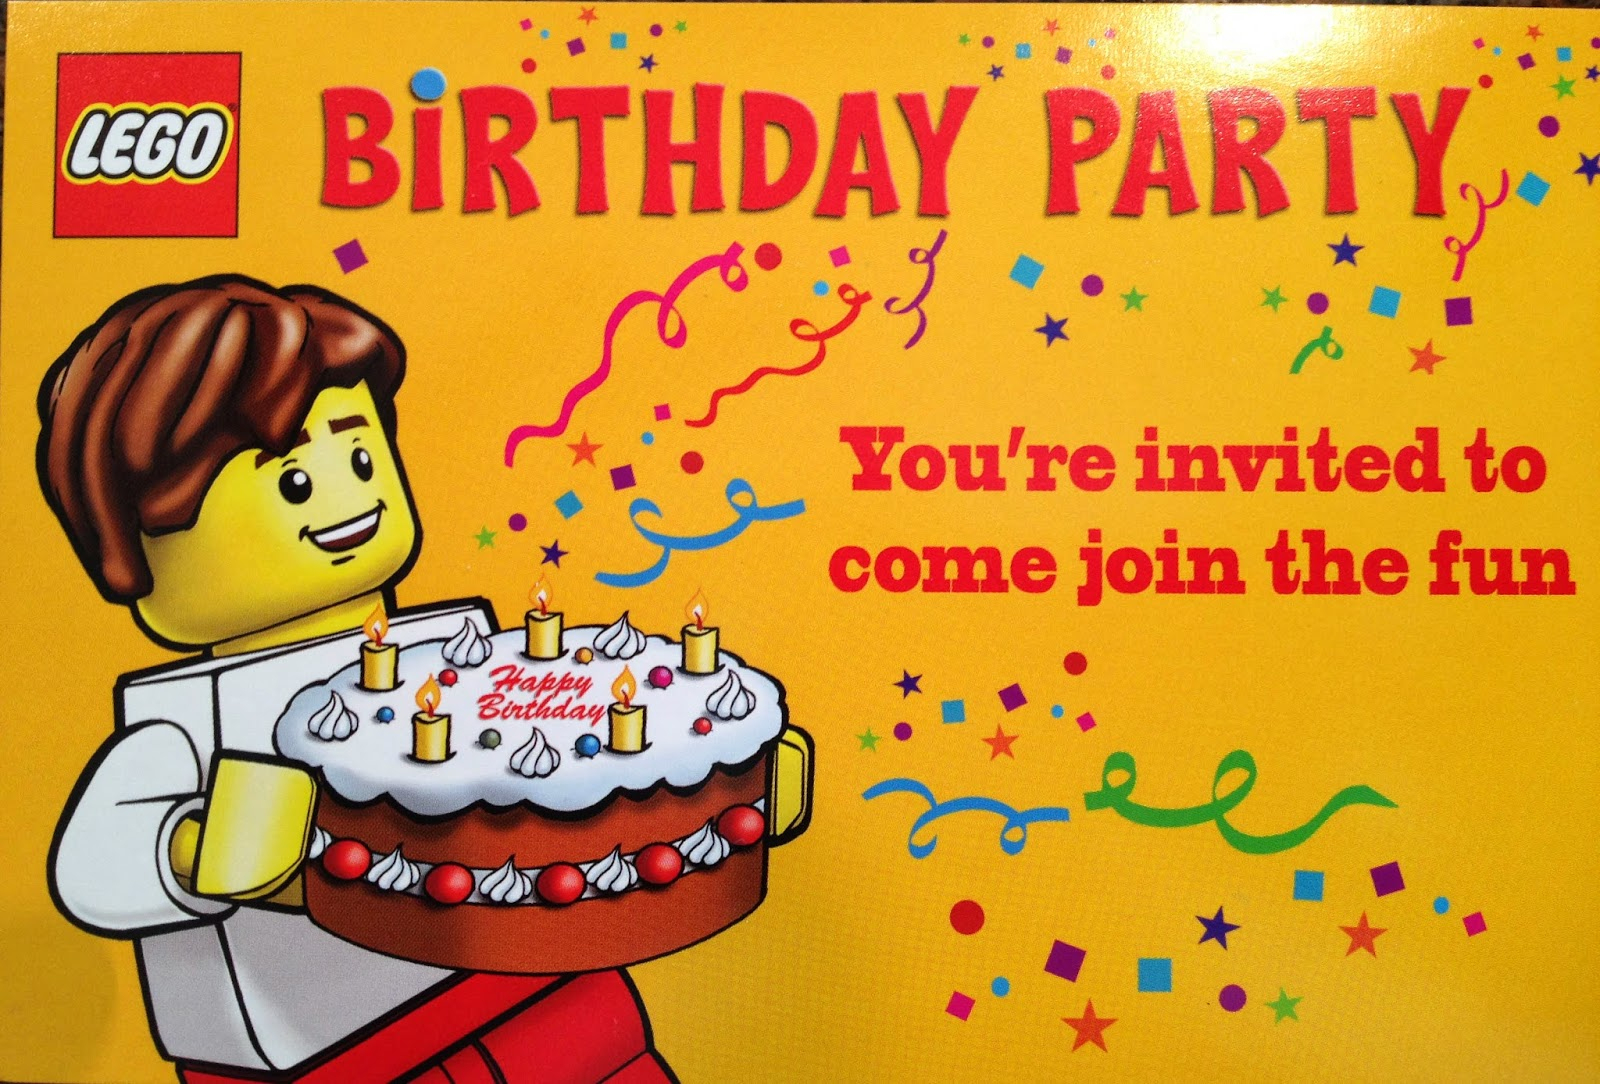 Lego Party Invitations Lego Party Invitations A Beauty Party - Lego Party Invitations Printable Free